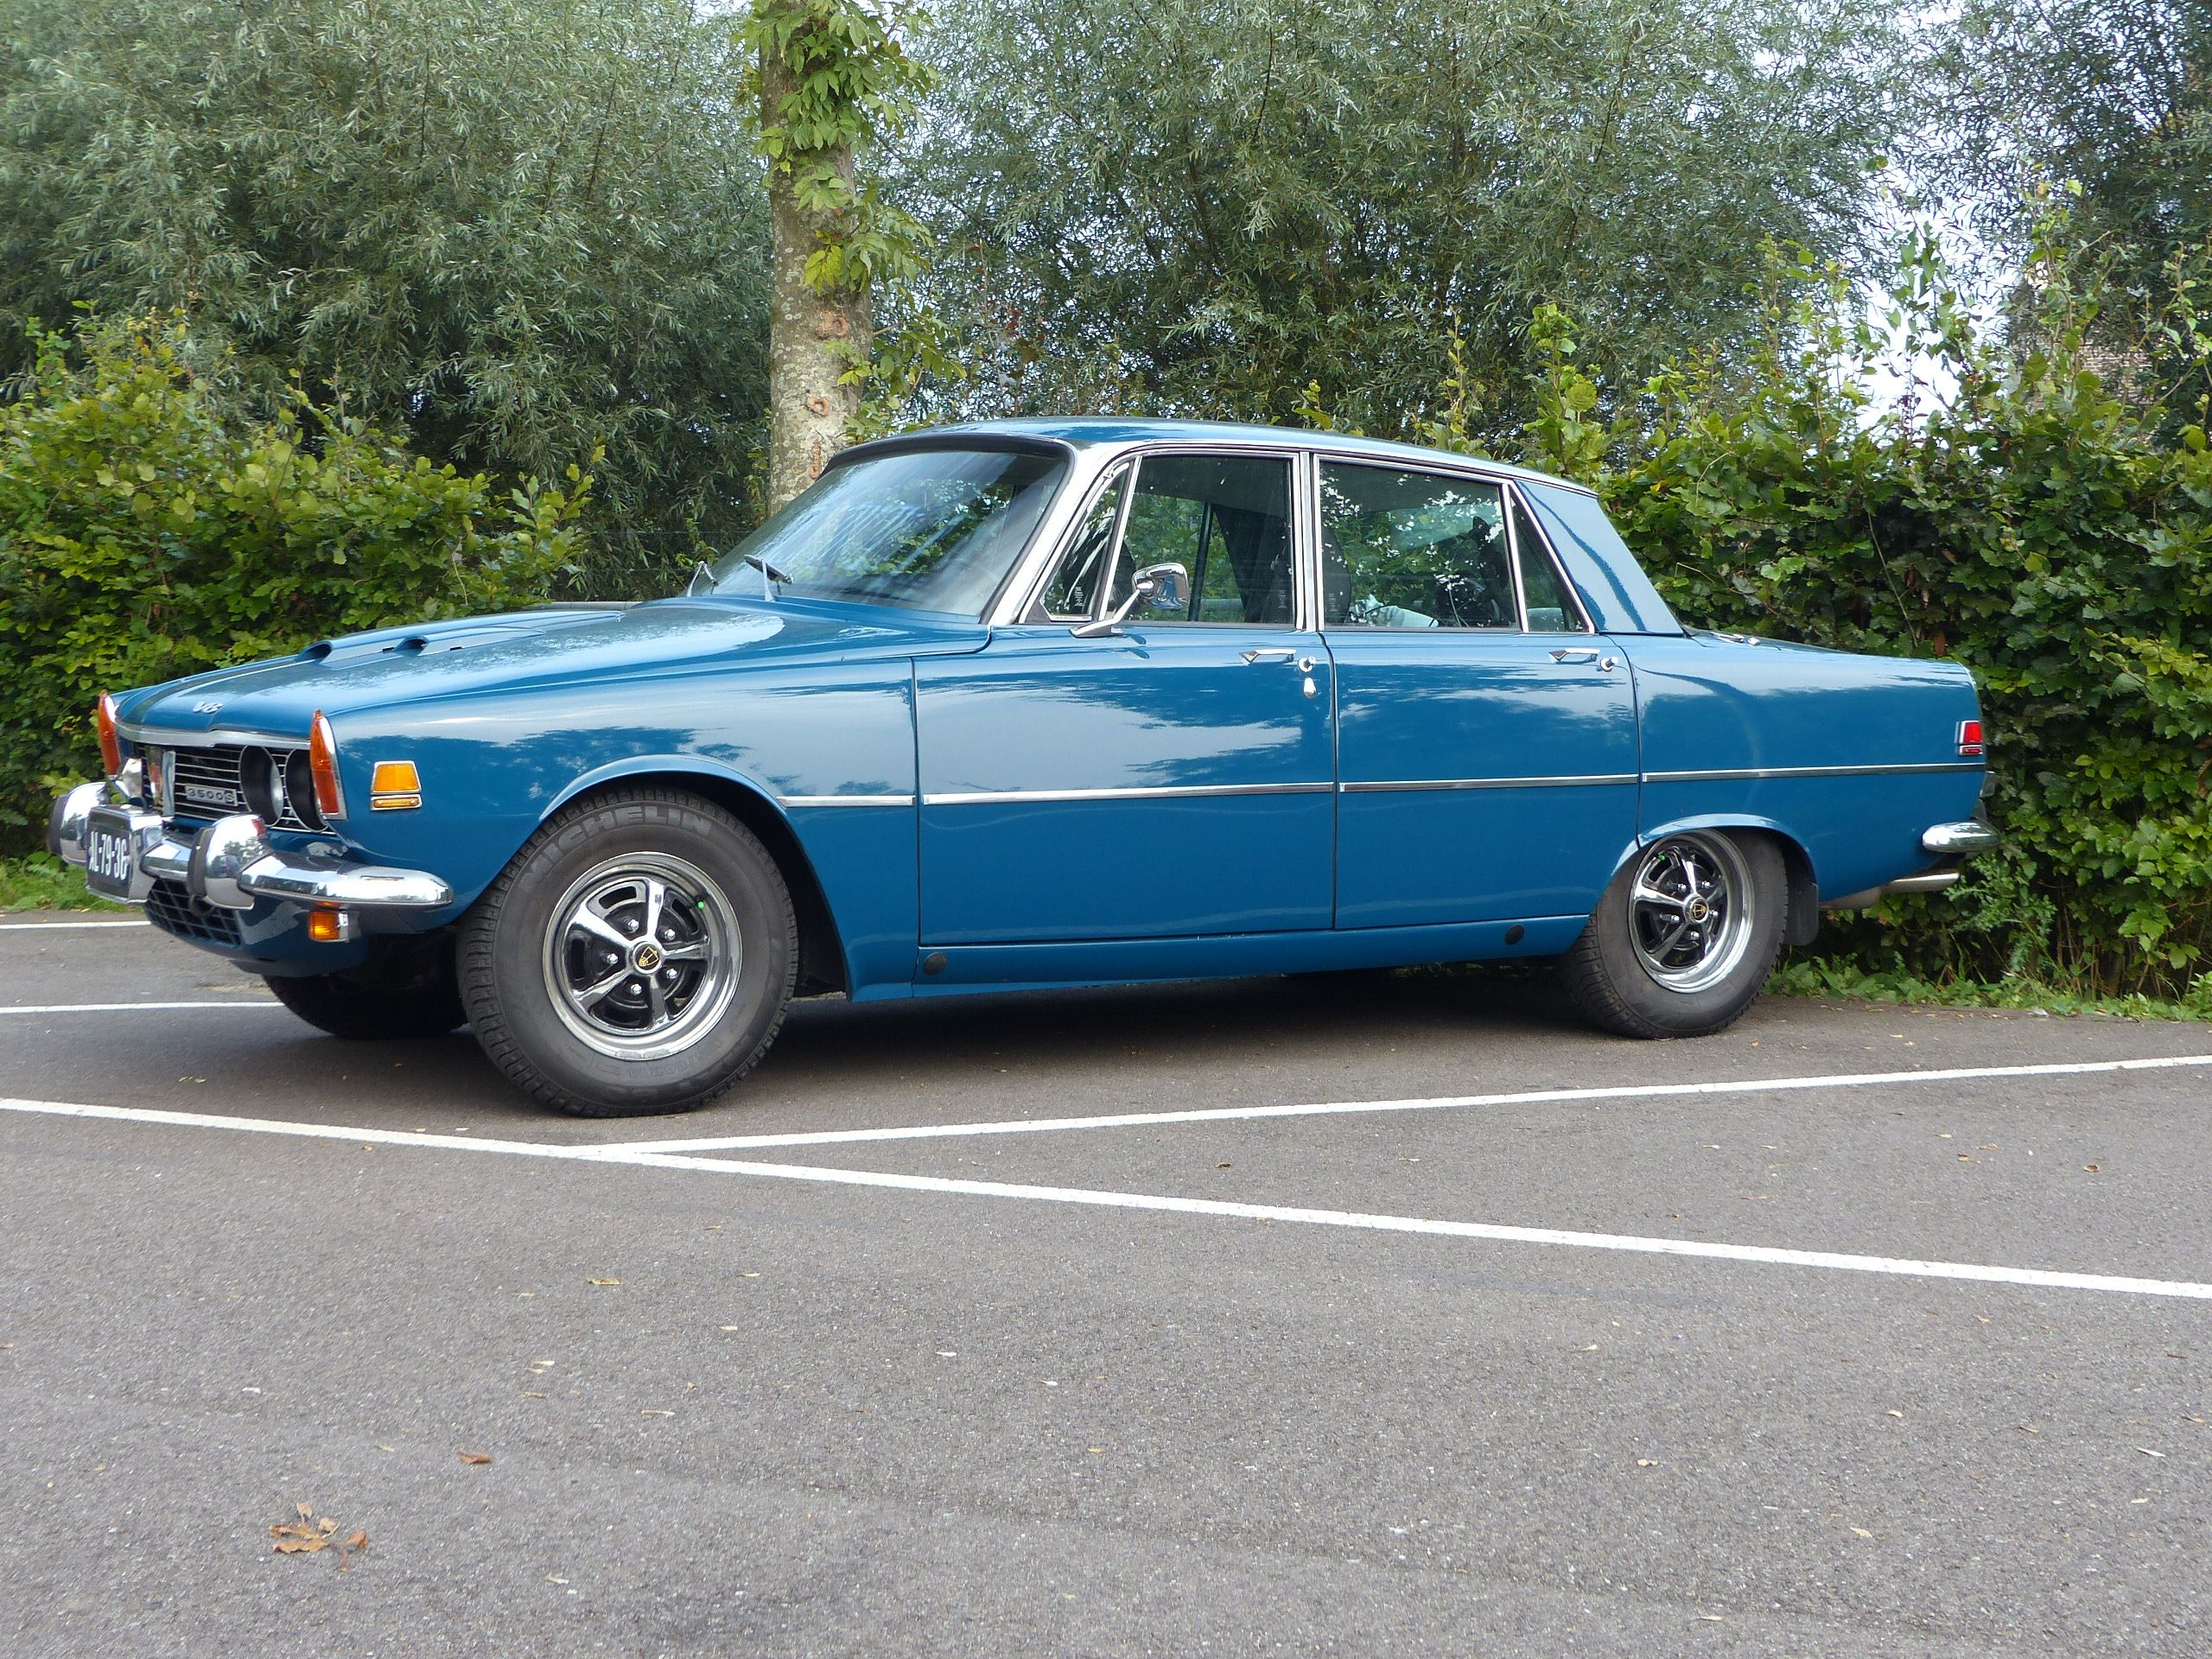 Rover 3500S NADA P6 | ROVER Classics | Pinterest | Rover p6 and Cars